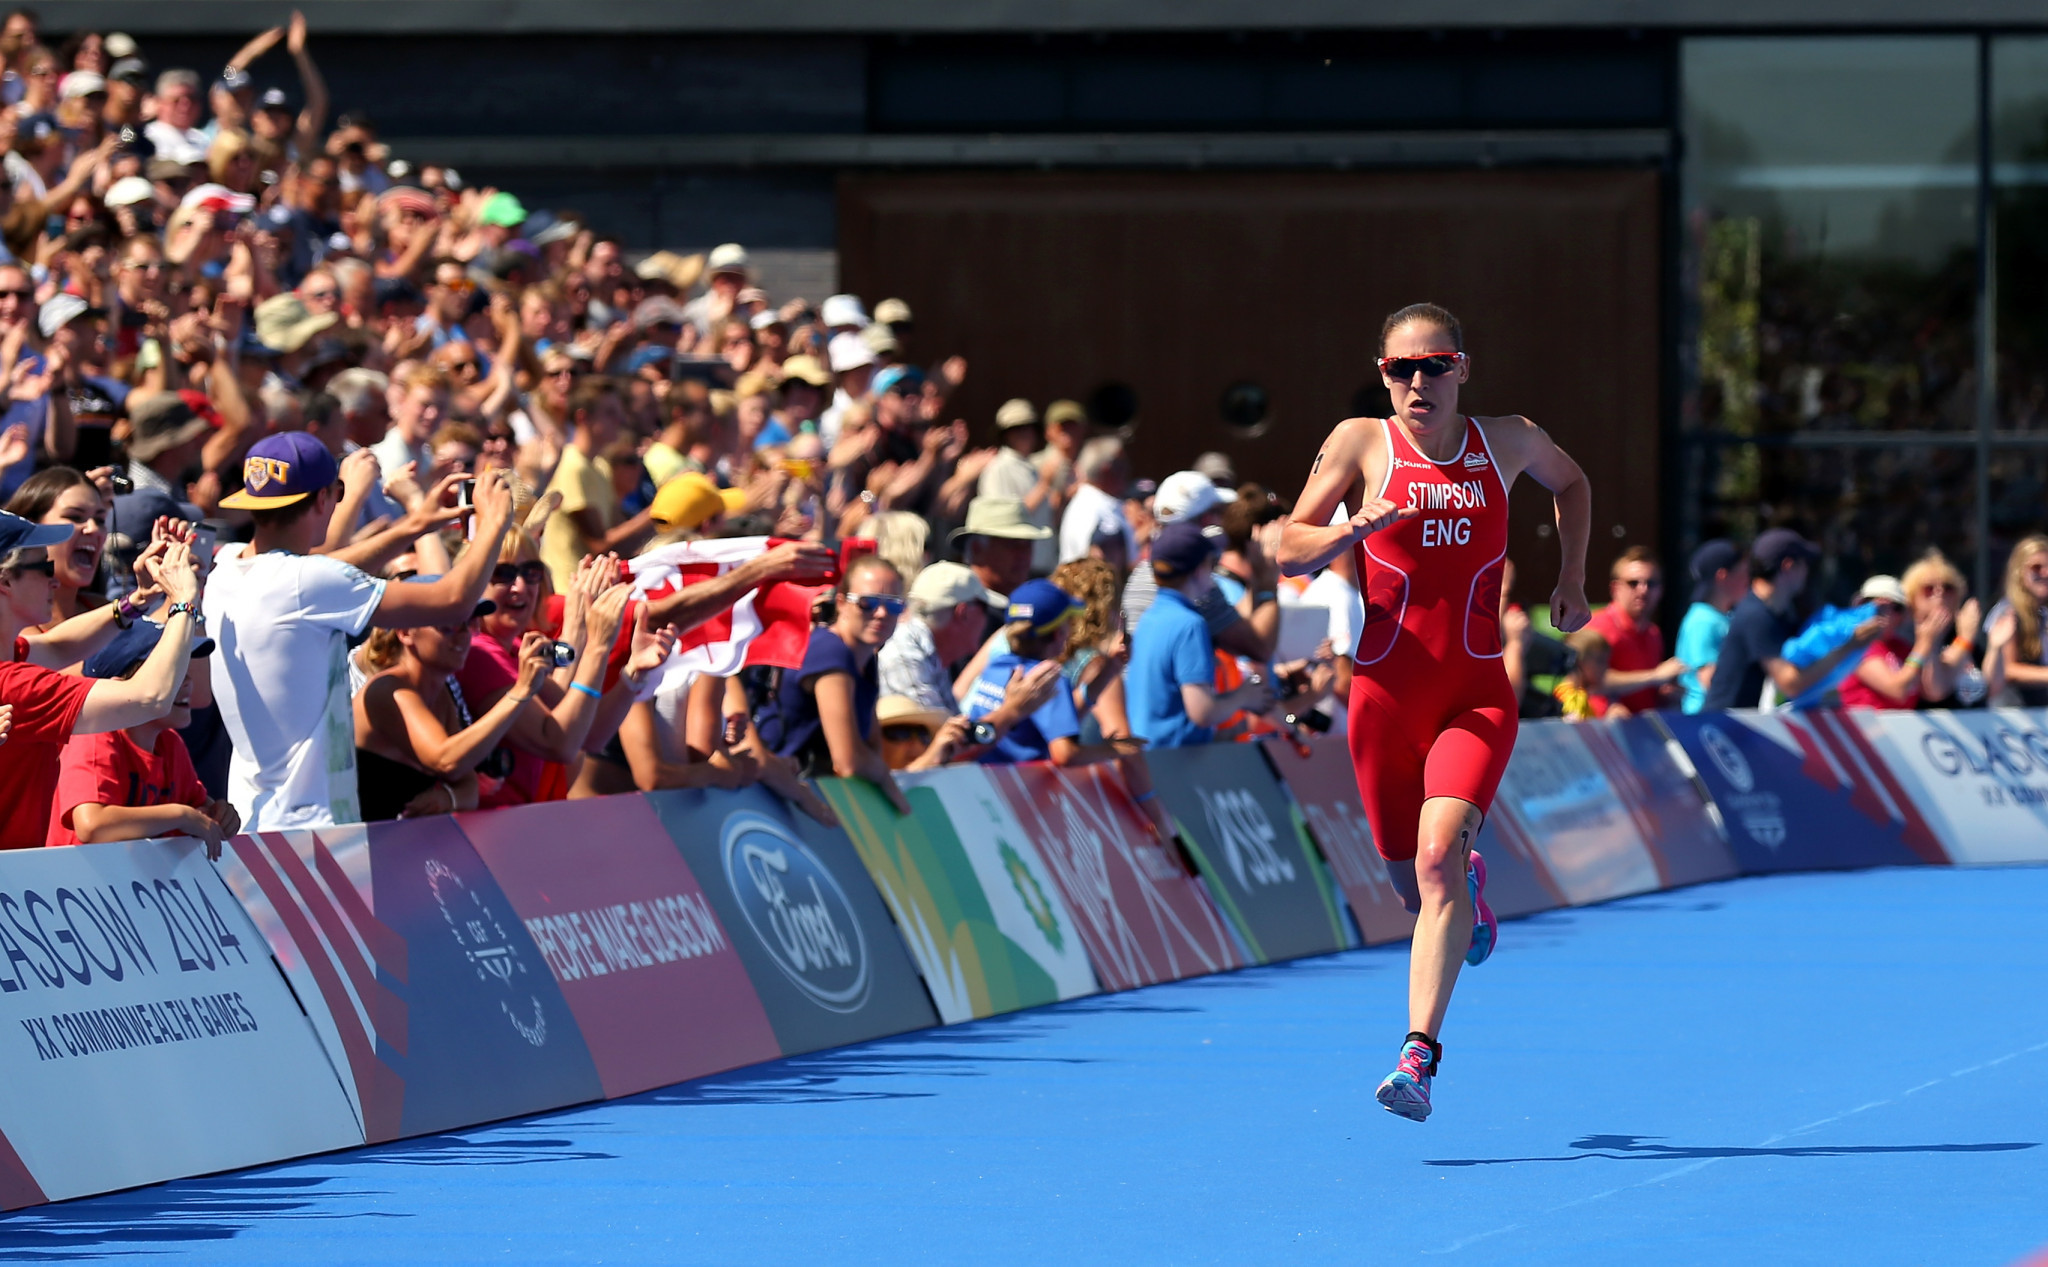 Local triathlete Stimpson relishes prospect of packed crowds at Birmingham 2022